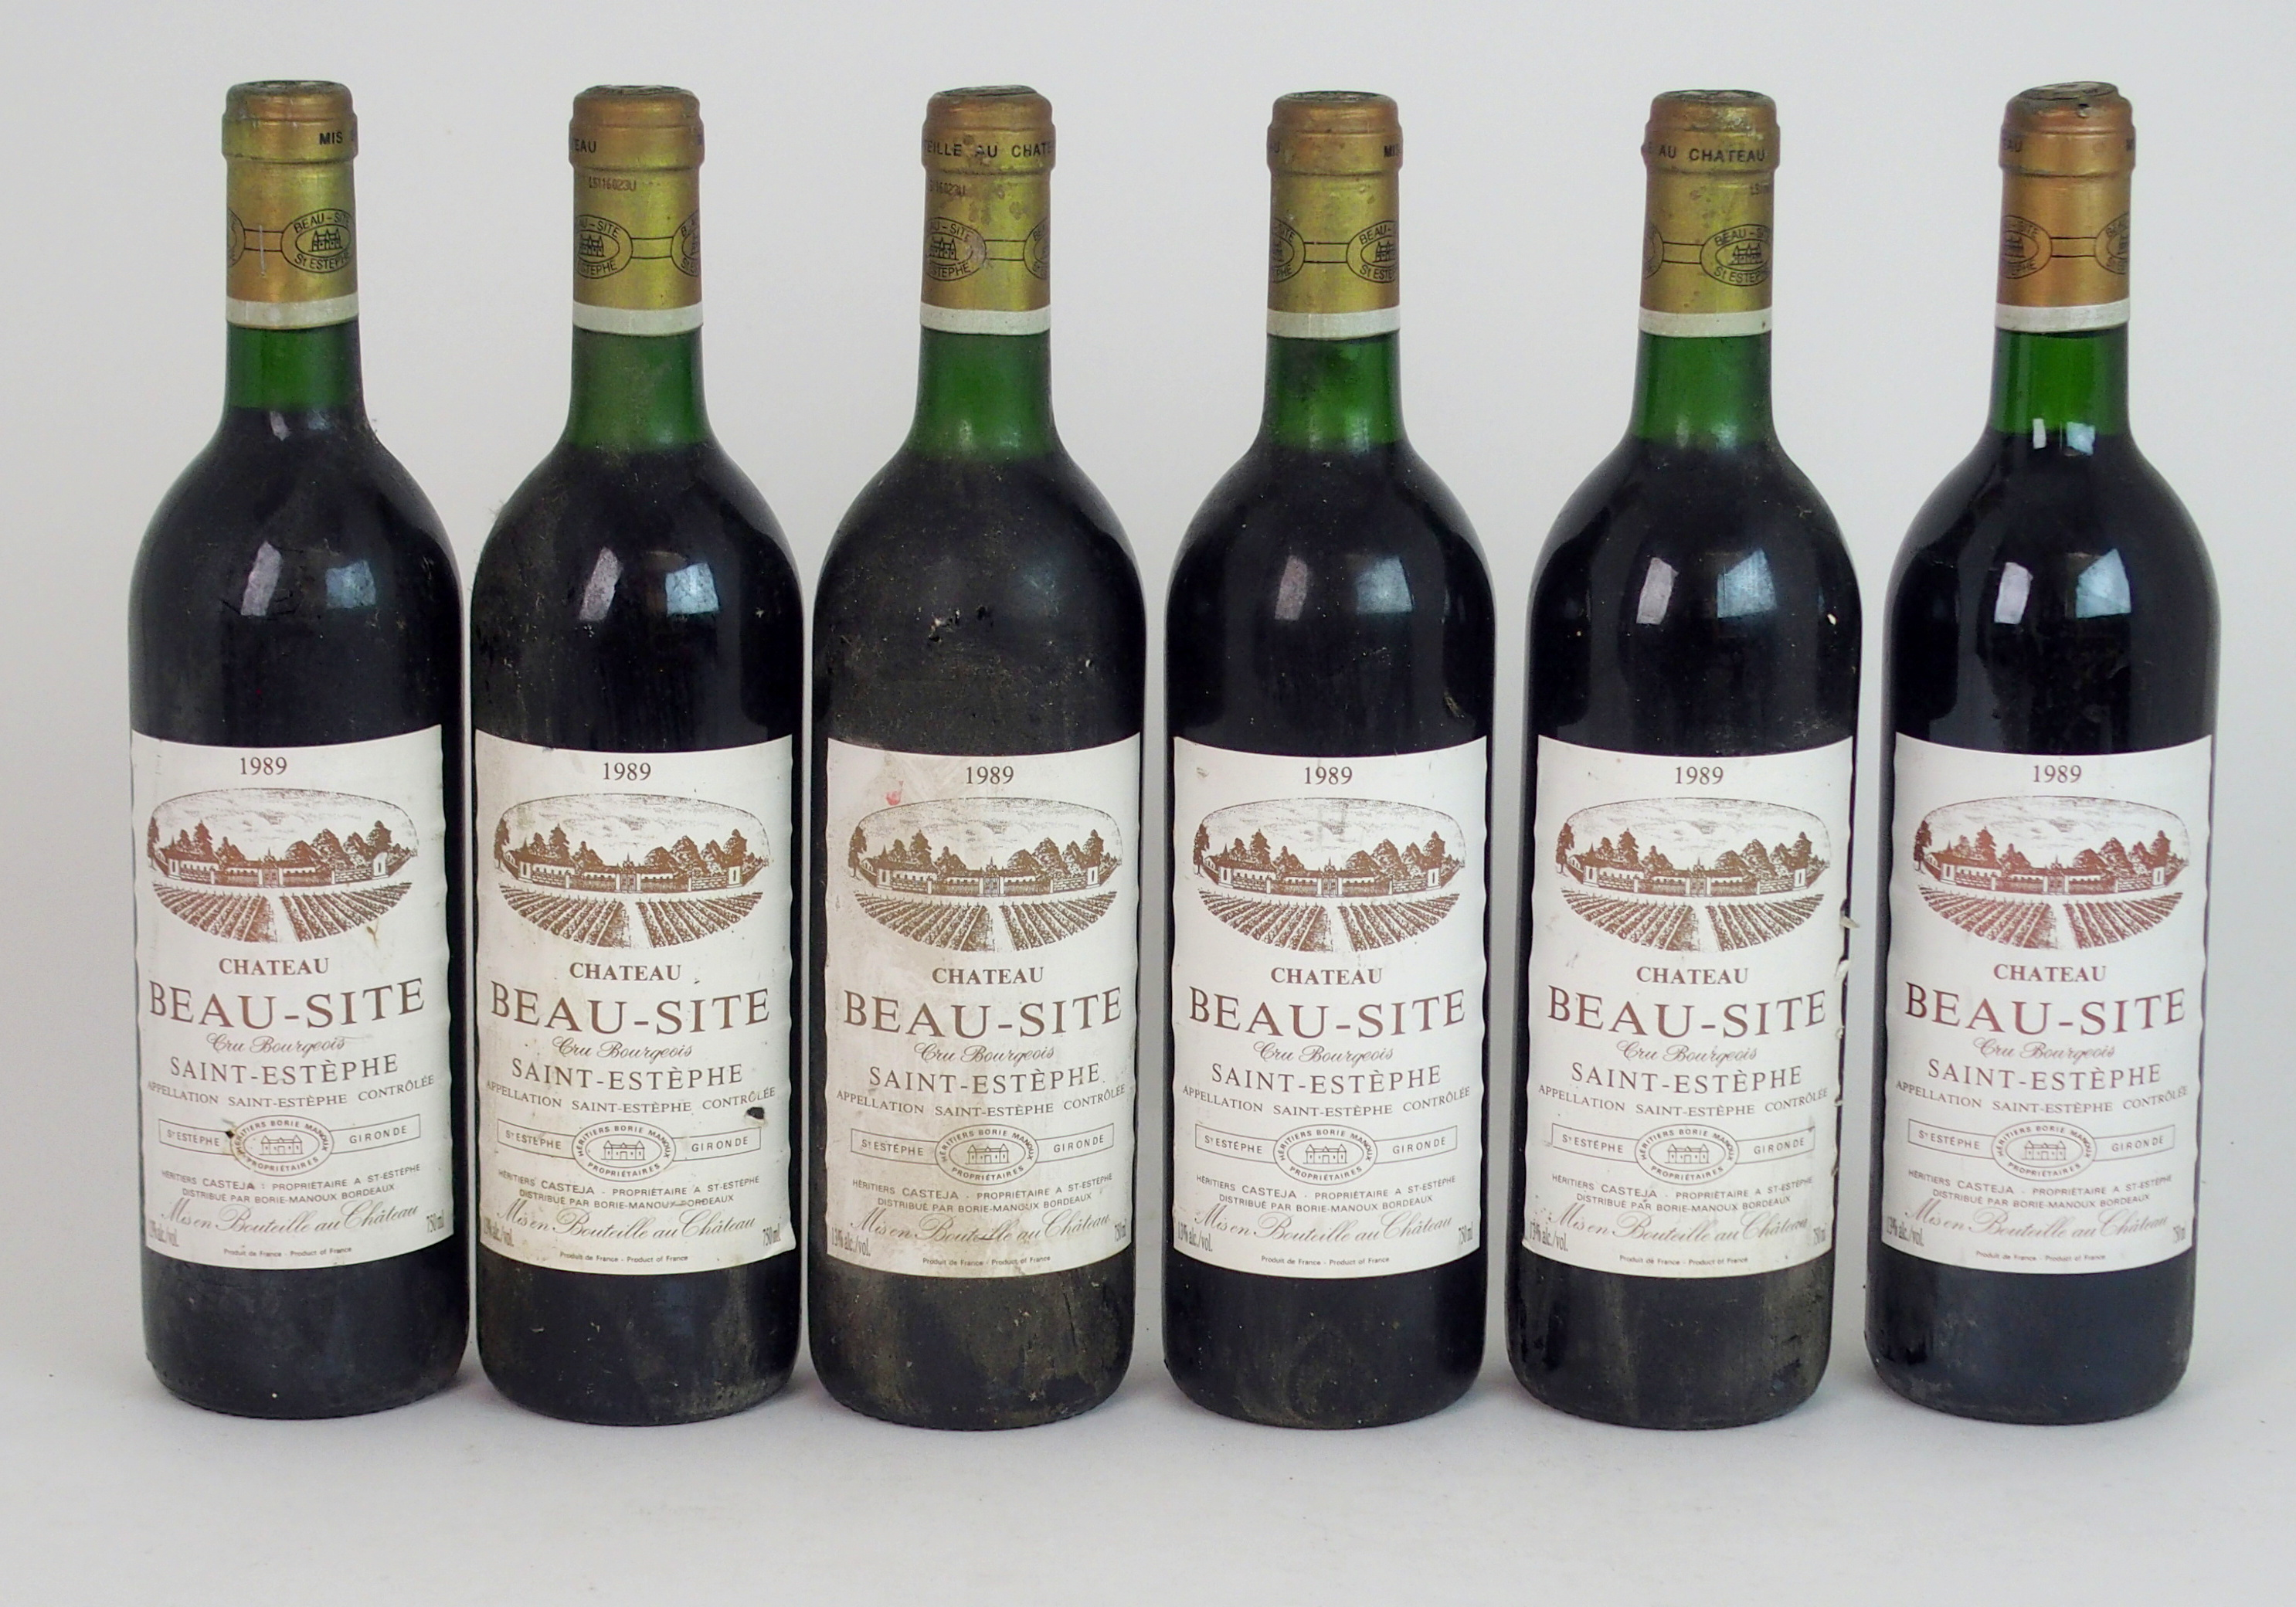 ELEVEN BOTTLES OF CHATEAU BEAU-SITE, SAINT ESTEPHE, 1989 13%vol, 750ml, labels stained and some torn